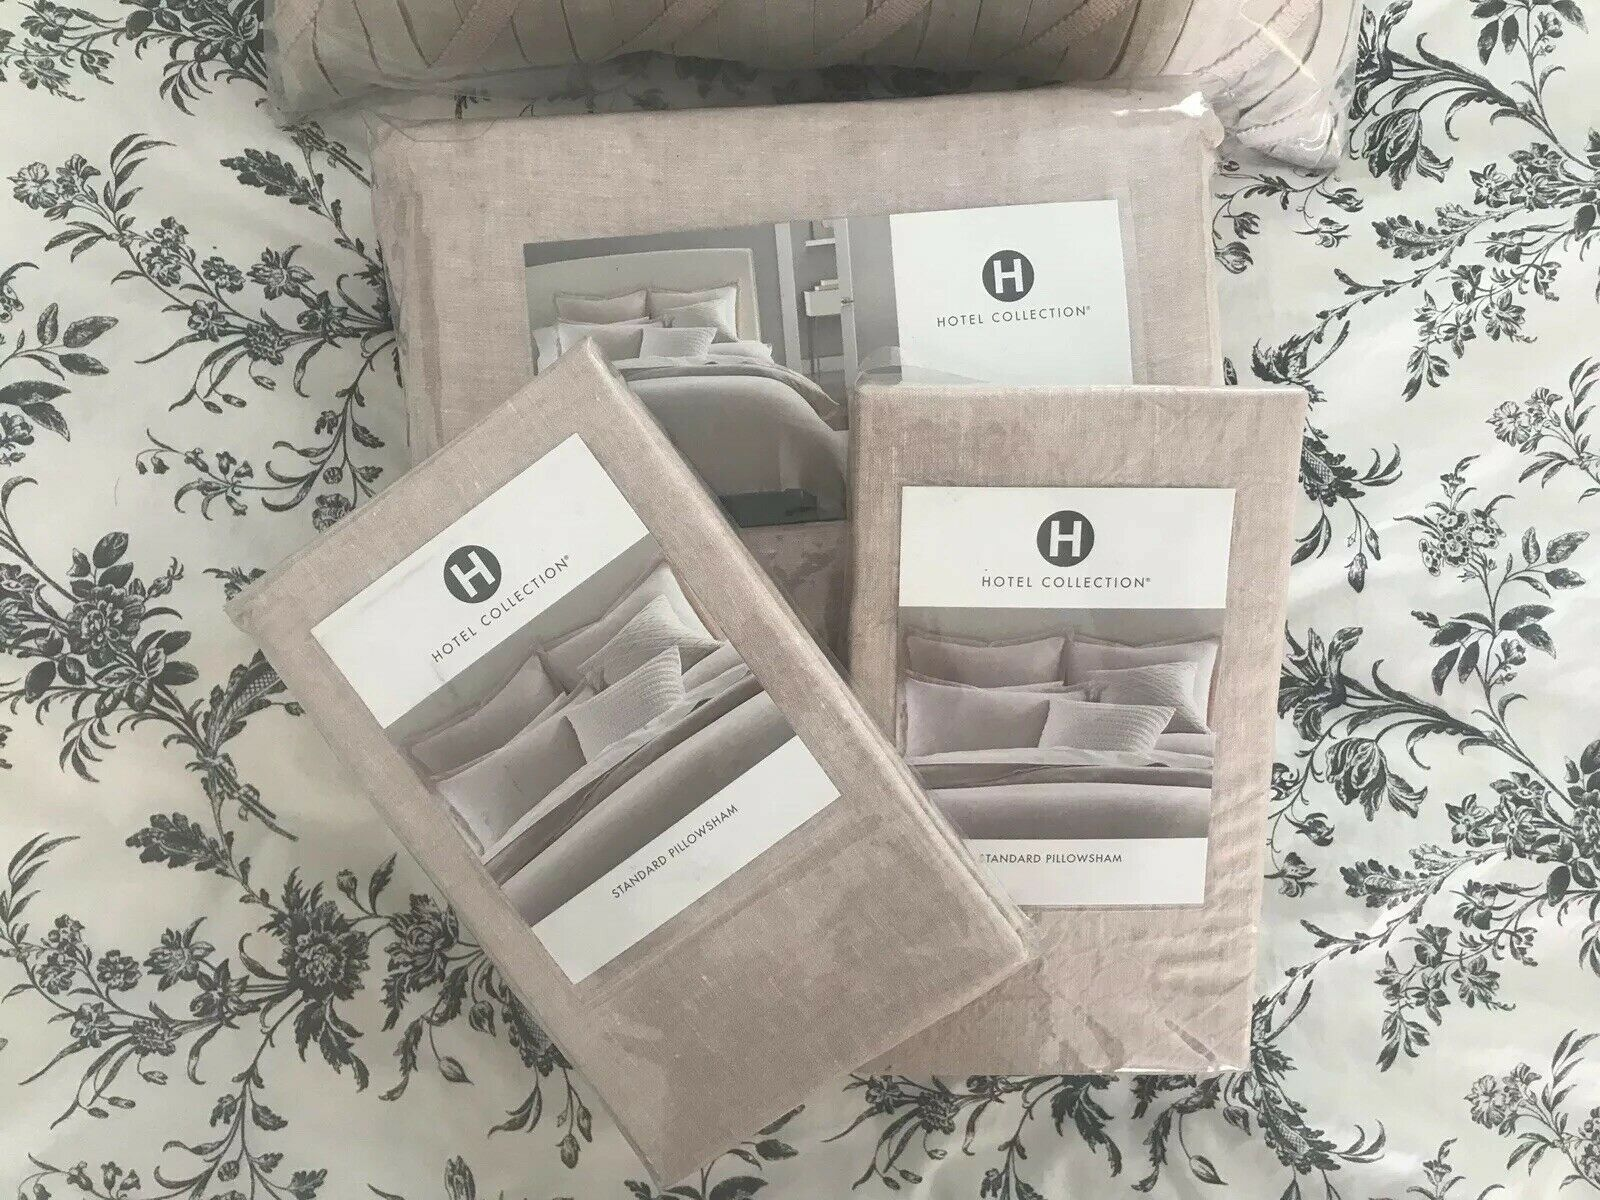 Hotel Collection pinkQUARTZ Solid Linen Queen Duvet Cover+2 St. Shams, Brand New